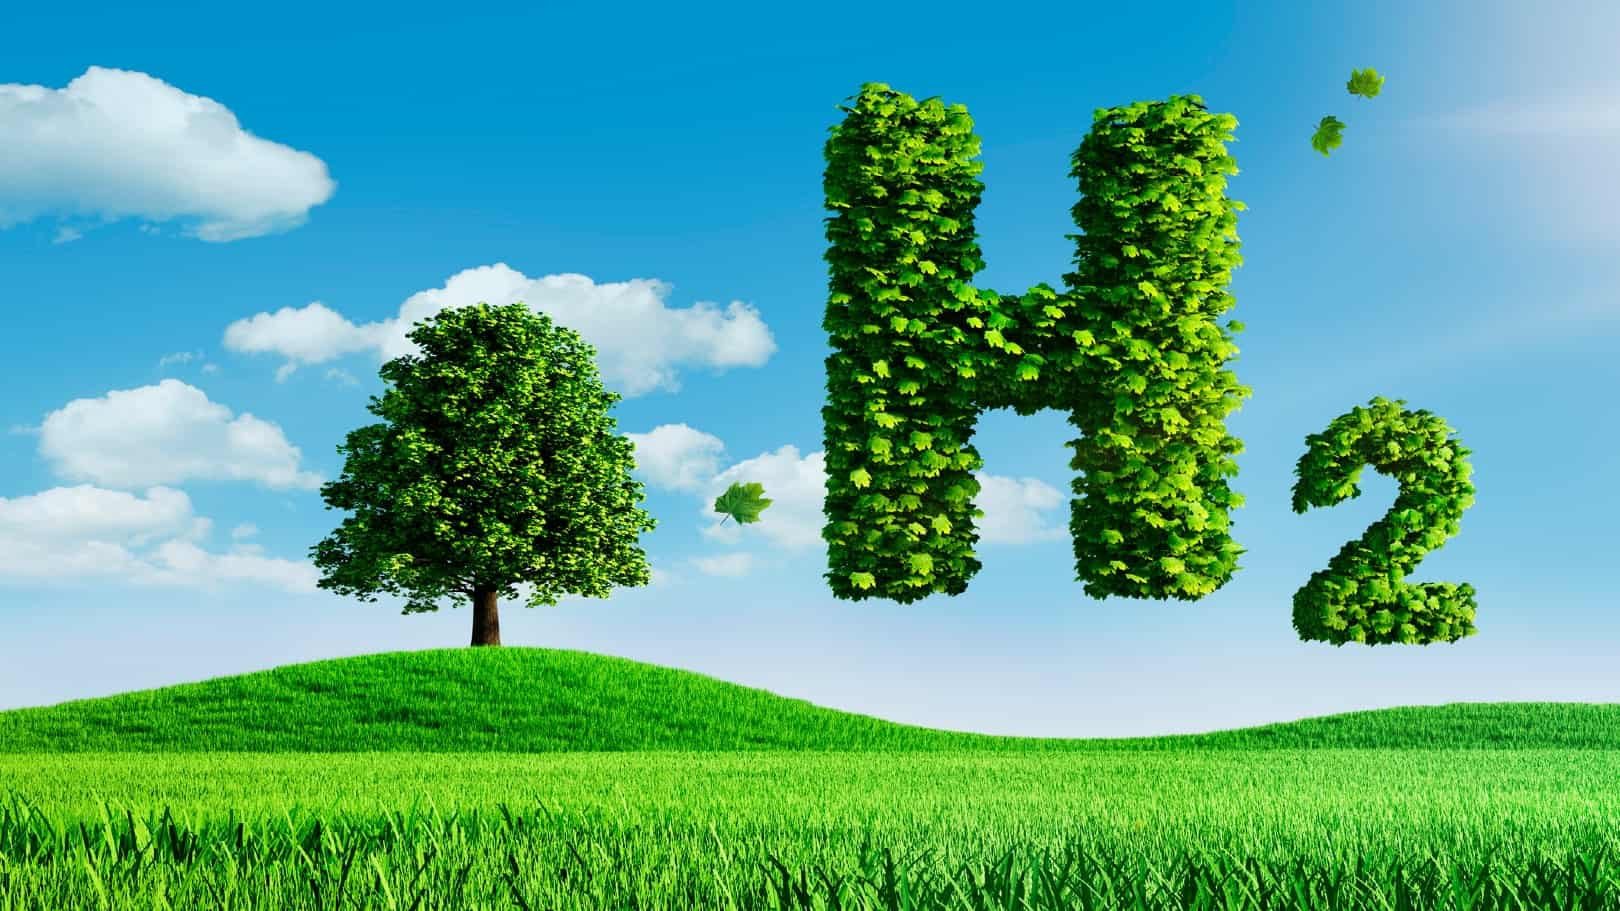 A graphic of a tree and a green leafy capital letter H on a blue sky background, indicating a share price rise for ASX companies dealing in hydrogen energy